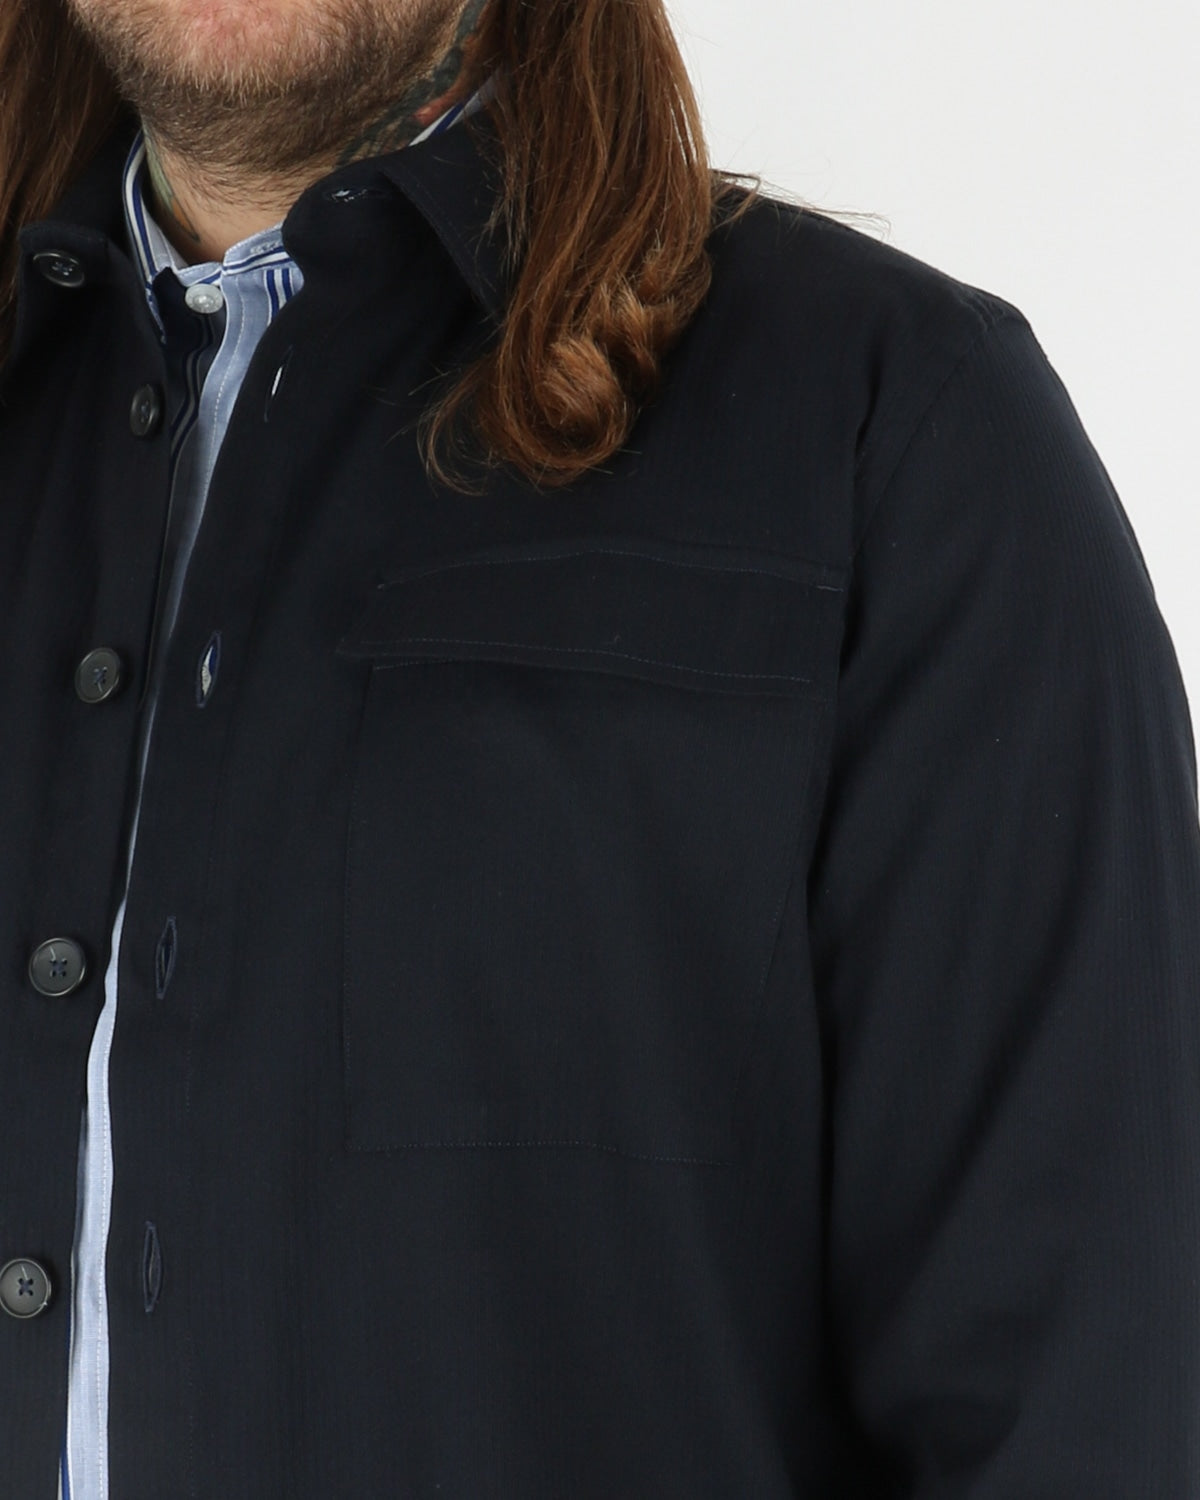 libertine libertine_nation shirt_dark navy_3_3